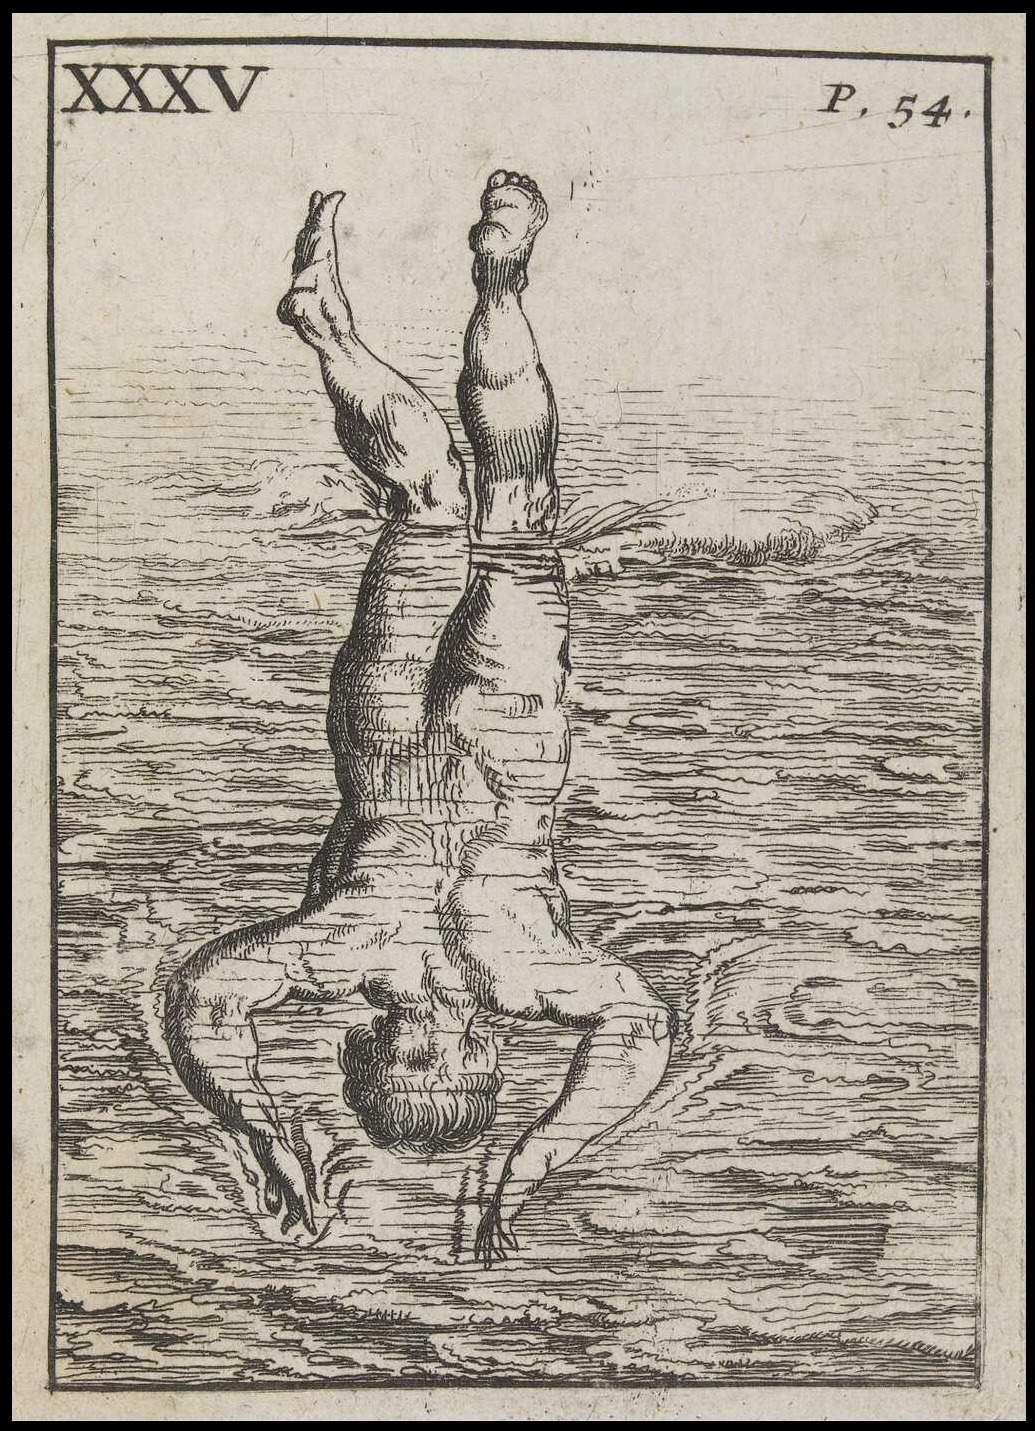 book illustration of vertical dive into water